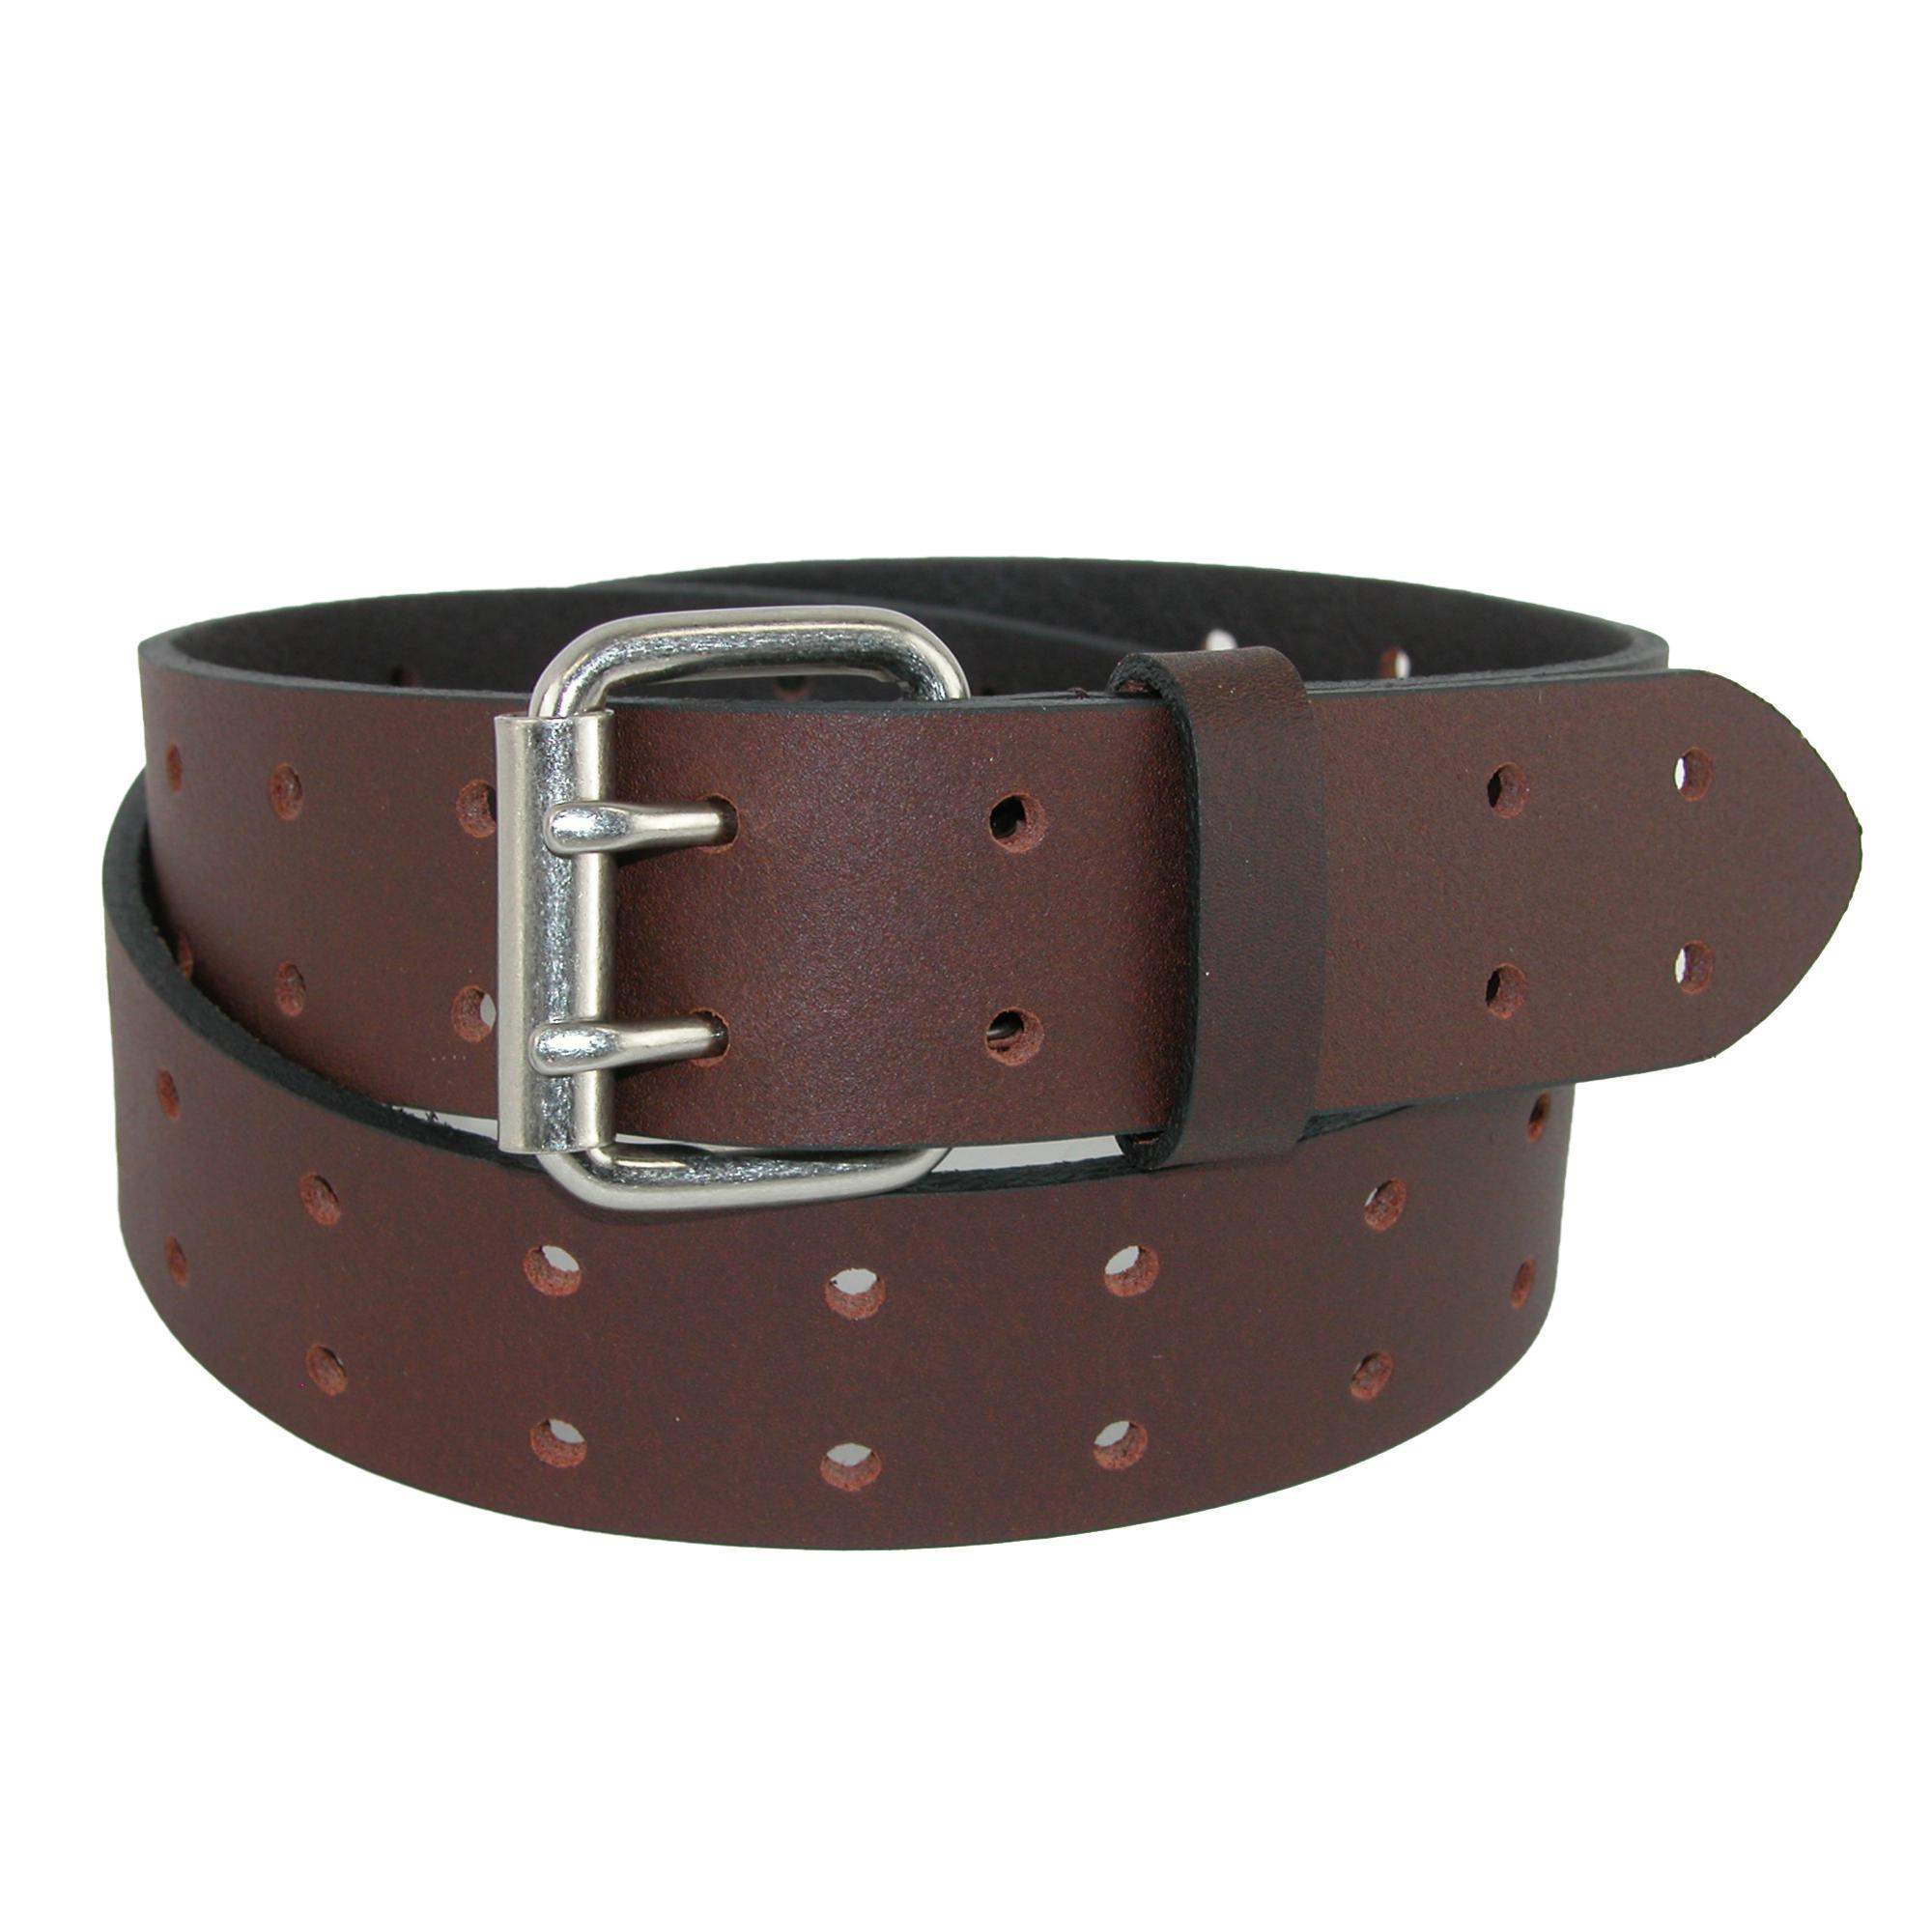 Dickies_Men's_Leather_Two_Hole_Double_Prong_Bridle_Belt_-_Brown_36